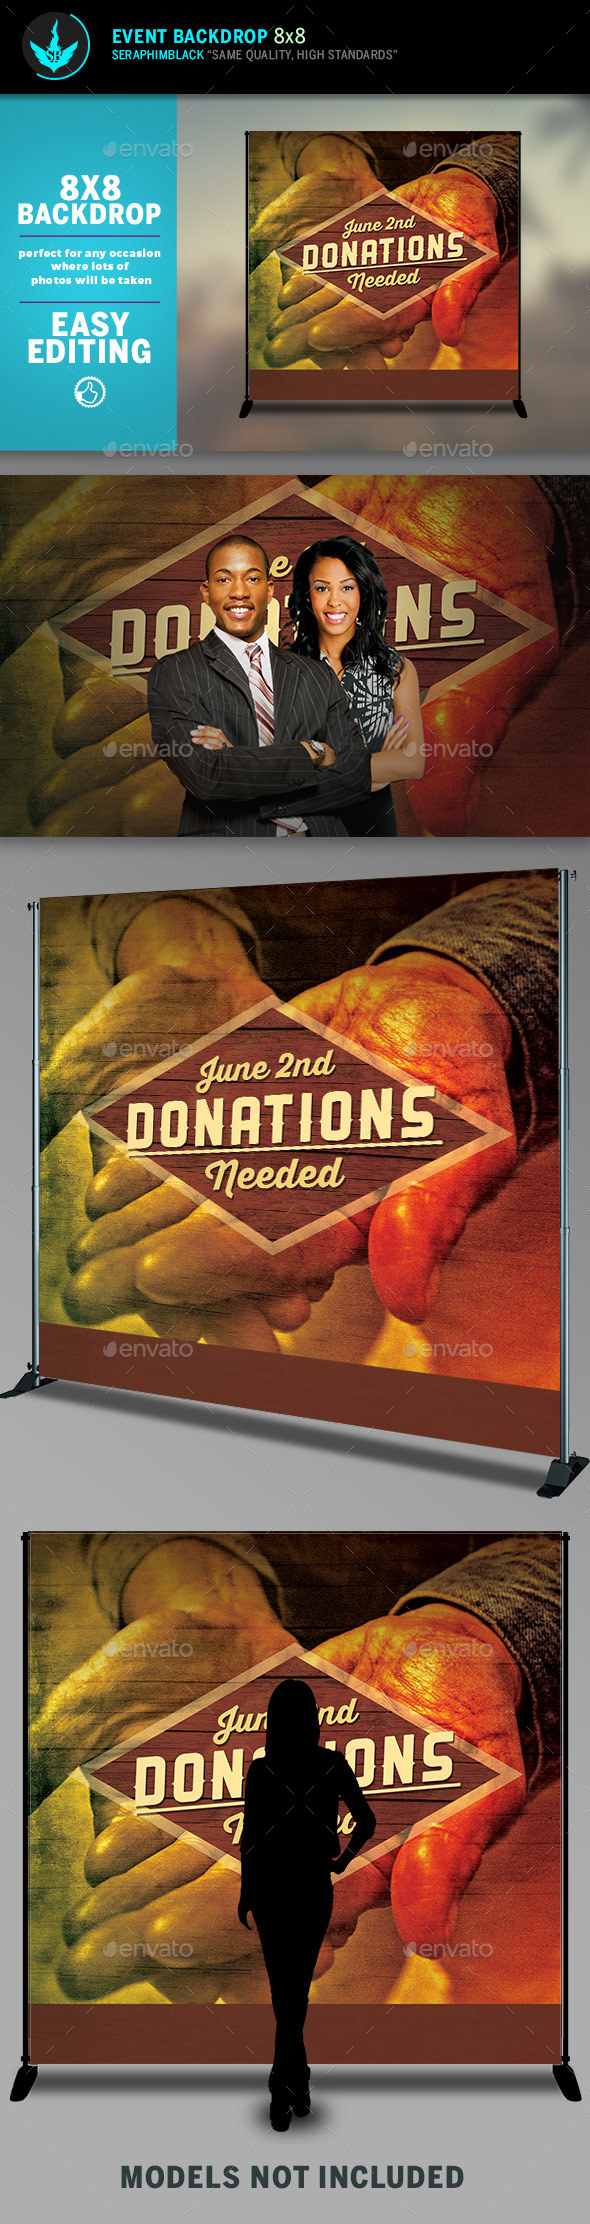 GraphicRiver Donations 8x8 Event Backdrop Template 20484650